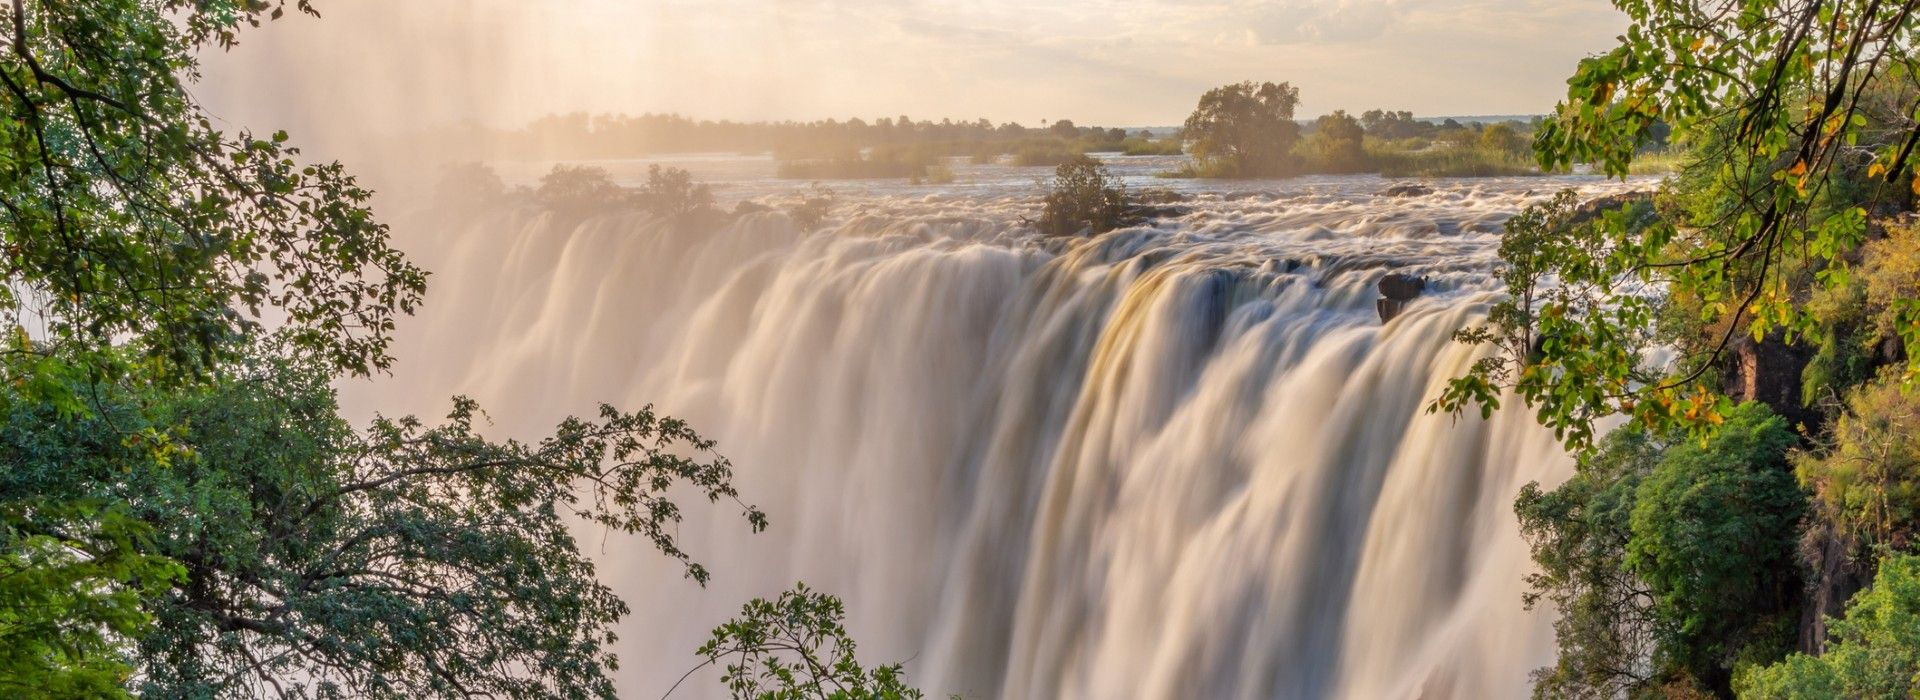 Natural landmarks sightseeing Tours in East Africa